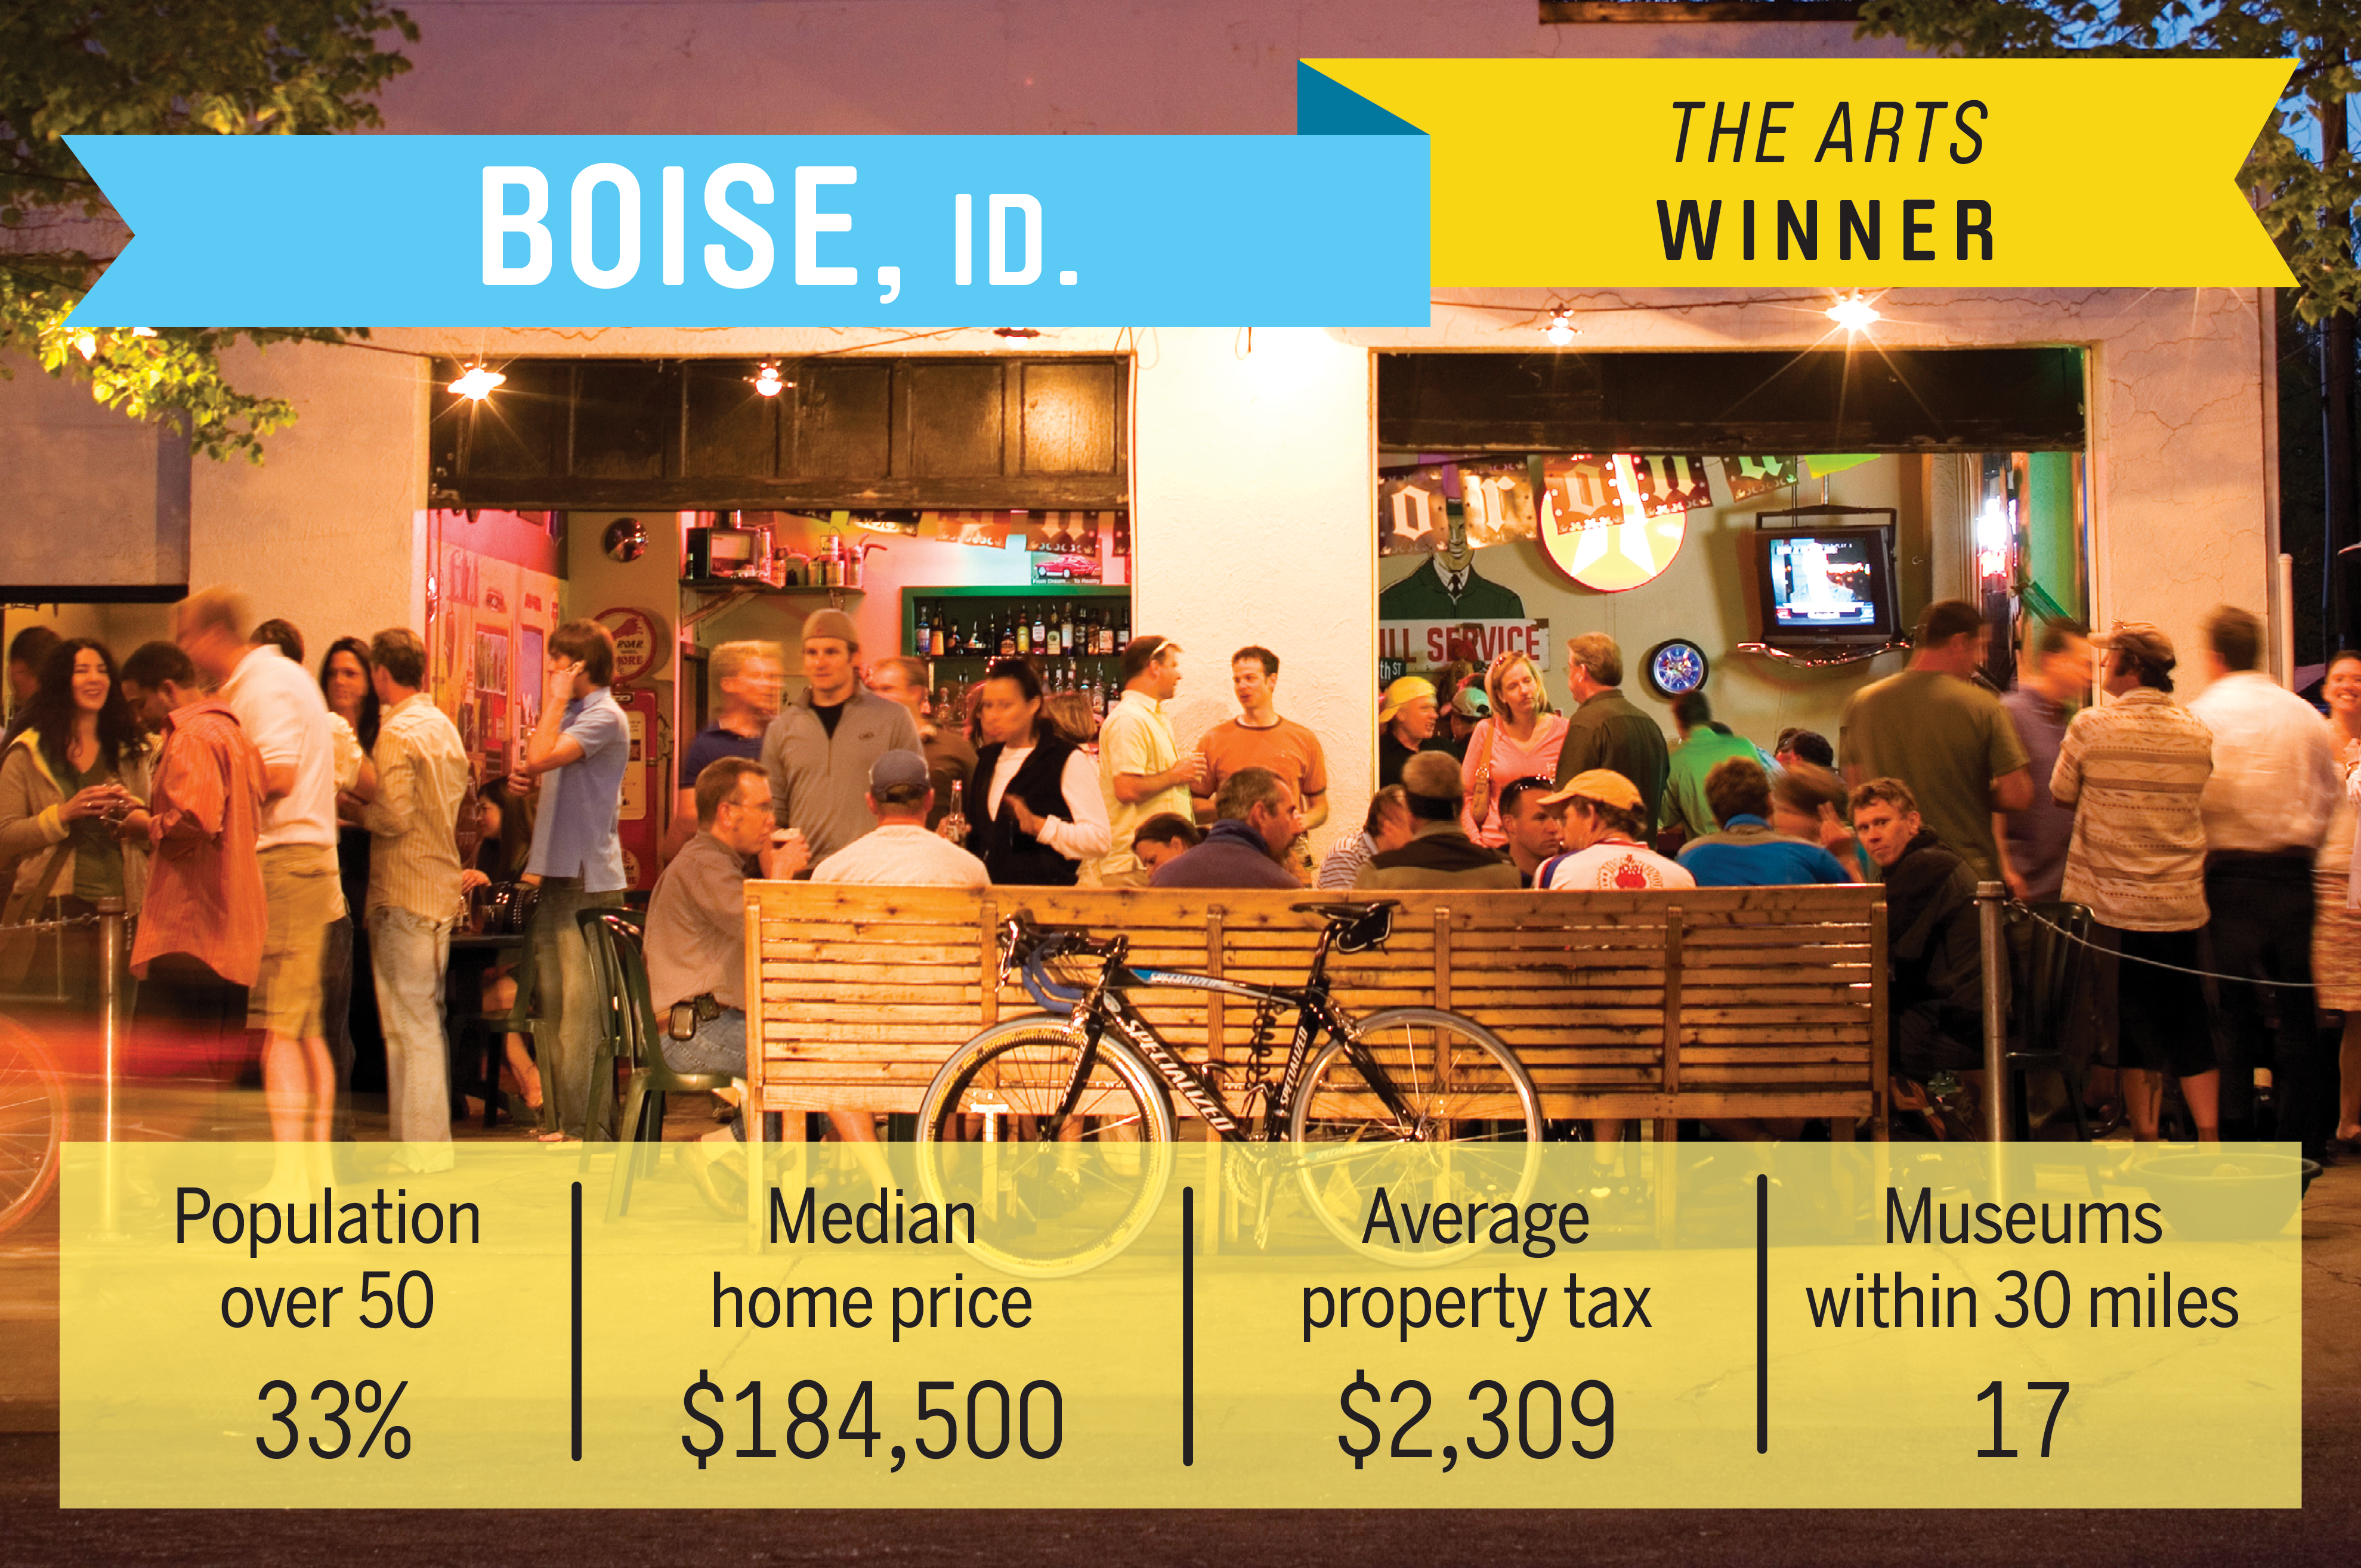 Celebrated for its natural wonders, Boise is also rich in culture, including  the annual outdoor Shakespeare festival, the art deco Boise Art Museum, the Boise Philharmonic, Ballet Idaho and Opera Idaho. Despite a booming economy, Boise has also maintained a low cost of living and median-priced homes for $184,500.